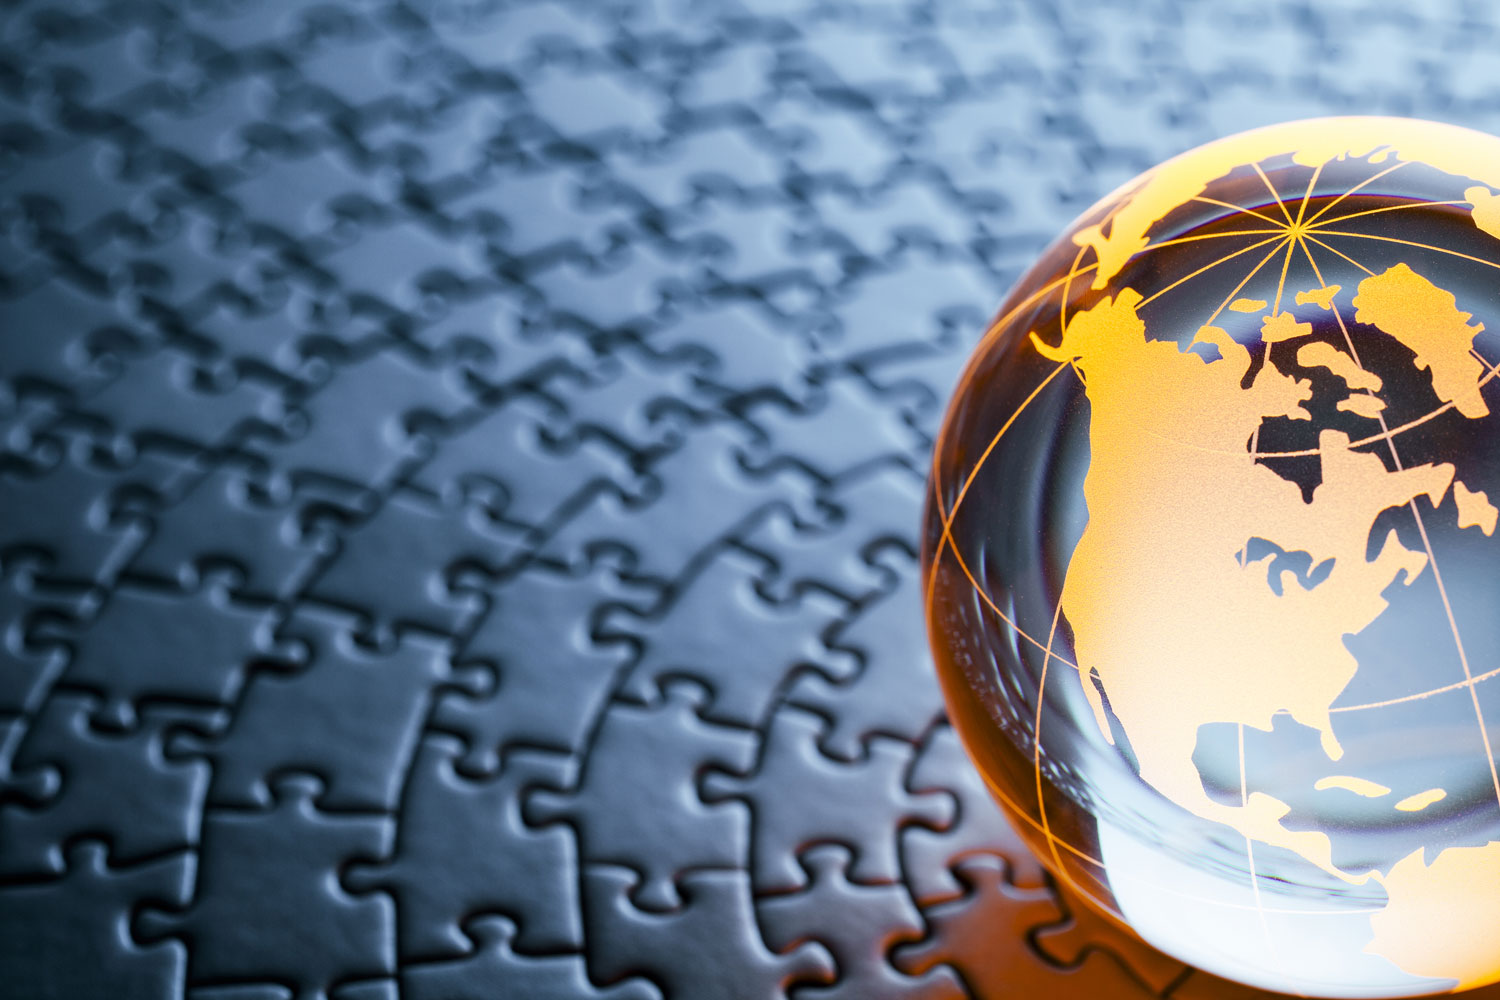 a crystal globe featuring North America sitting on a jigsaw puzzle background